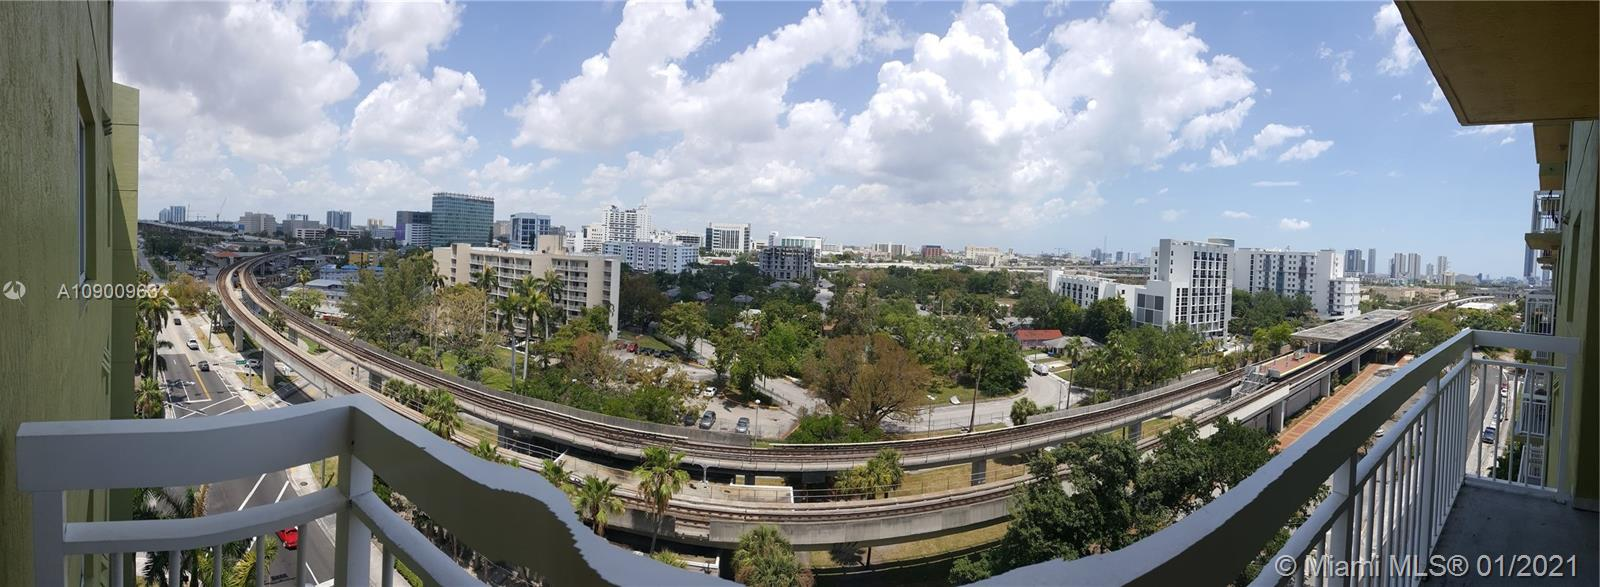 816 NW 11th St #1102 For Sale A10900963, FL